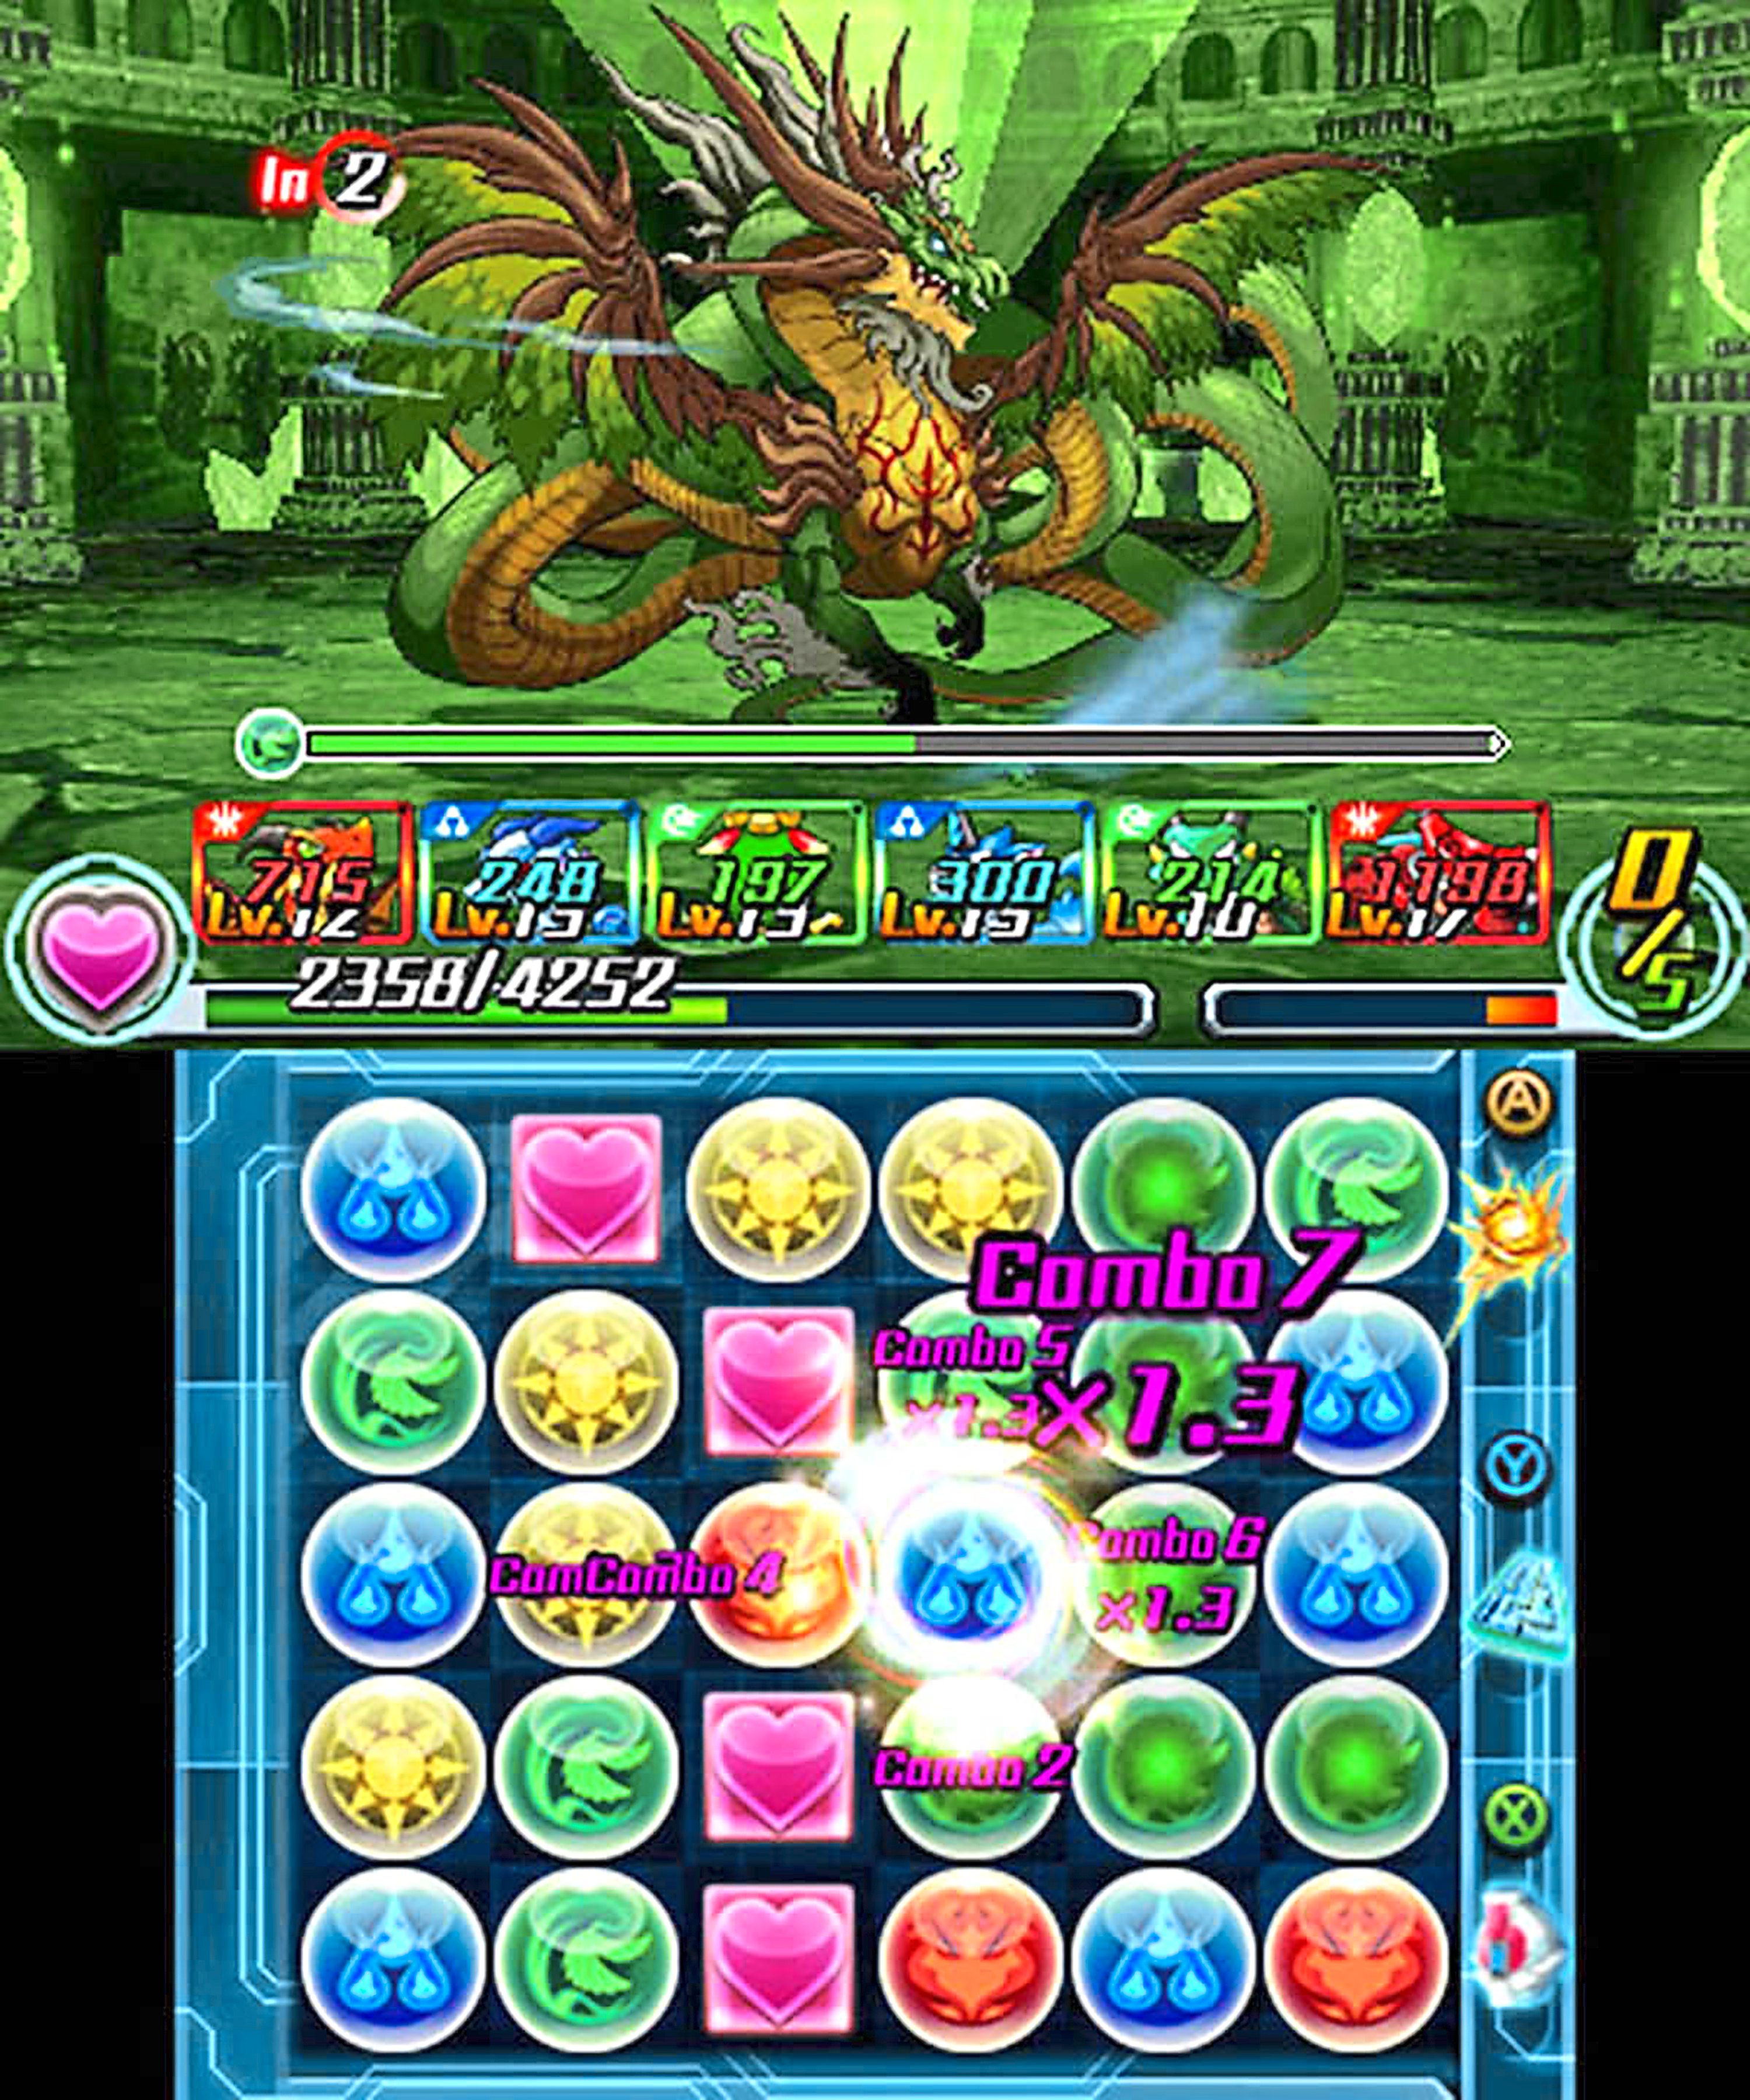 2 Defeated enemies drop puzzle pieces of their own, and they're used to evolve your menagerie in a simple mini-game.